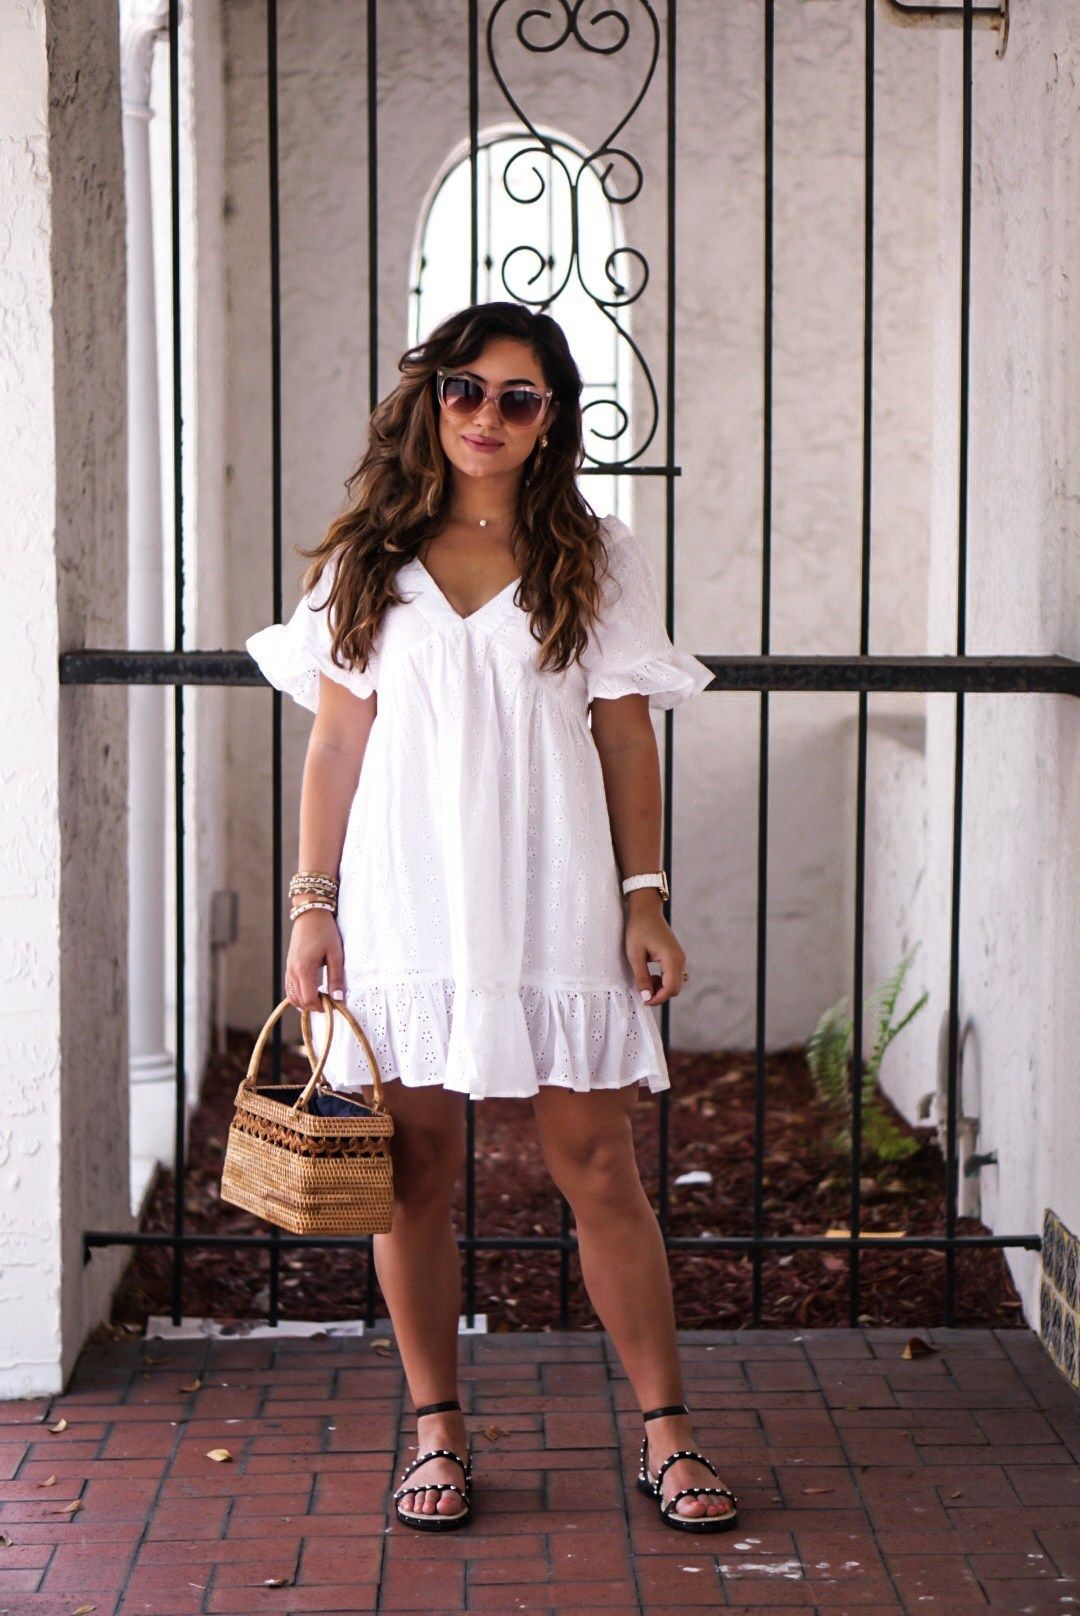 Affordable White Summer Sun Dress Outfit Krista Perez Of Sugar Love Chic Summer Dresses Curvy White Dress Summer Curvy Girl Outfits [ 1616 x 1080 Pixel ]